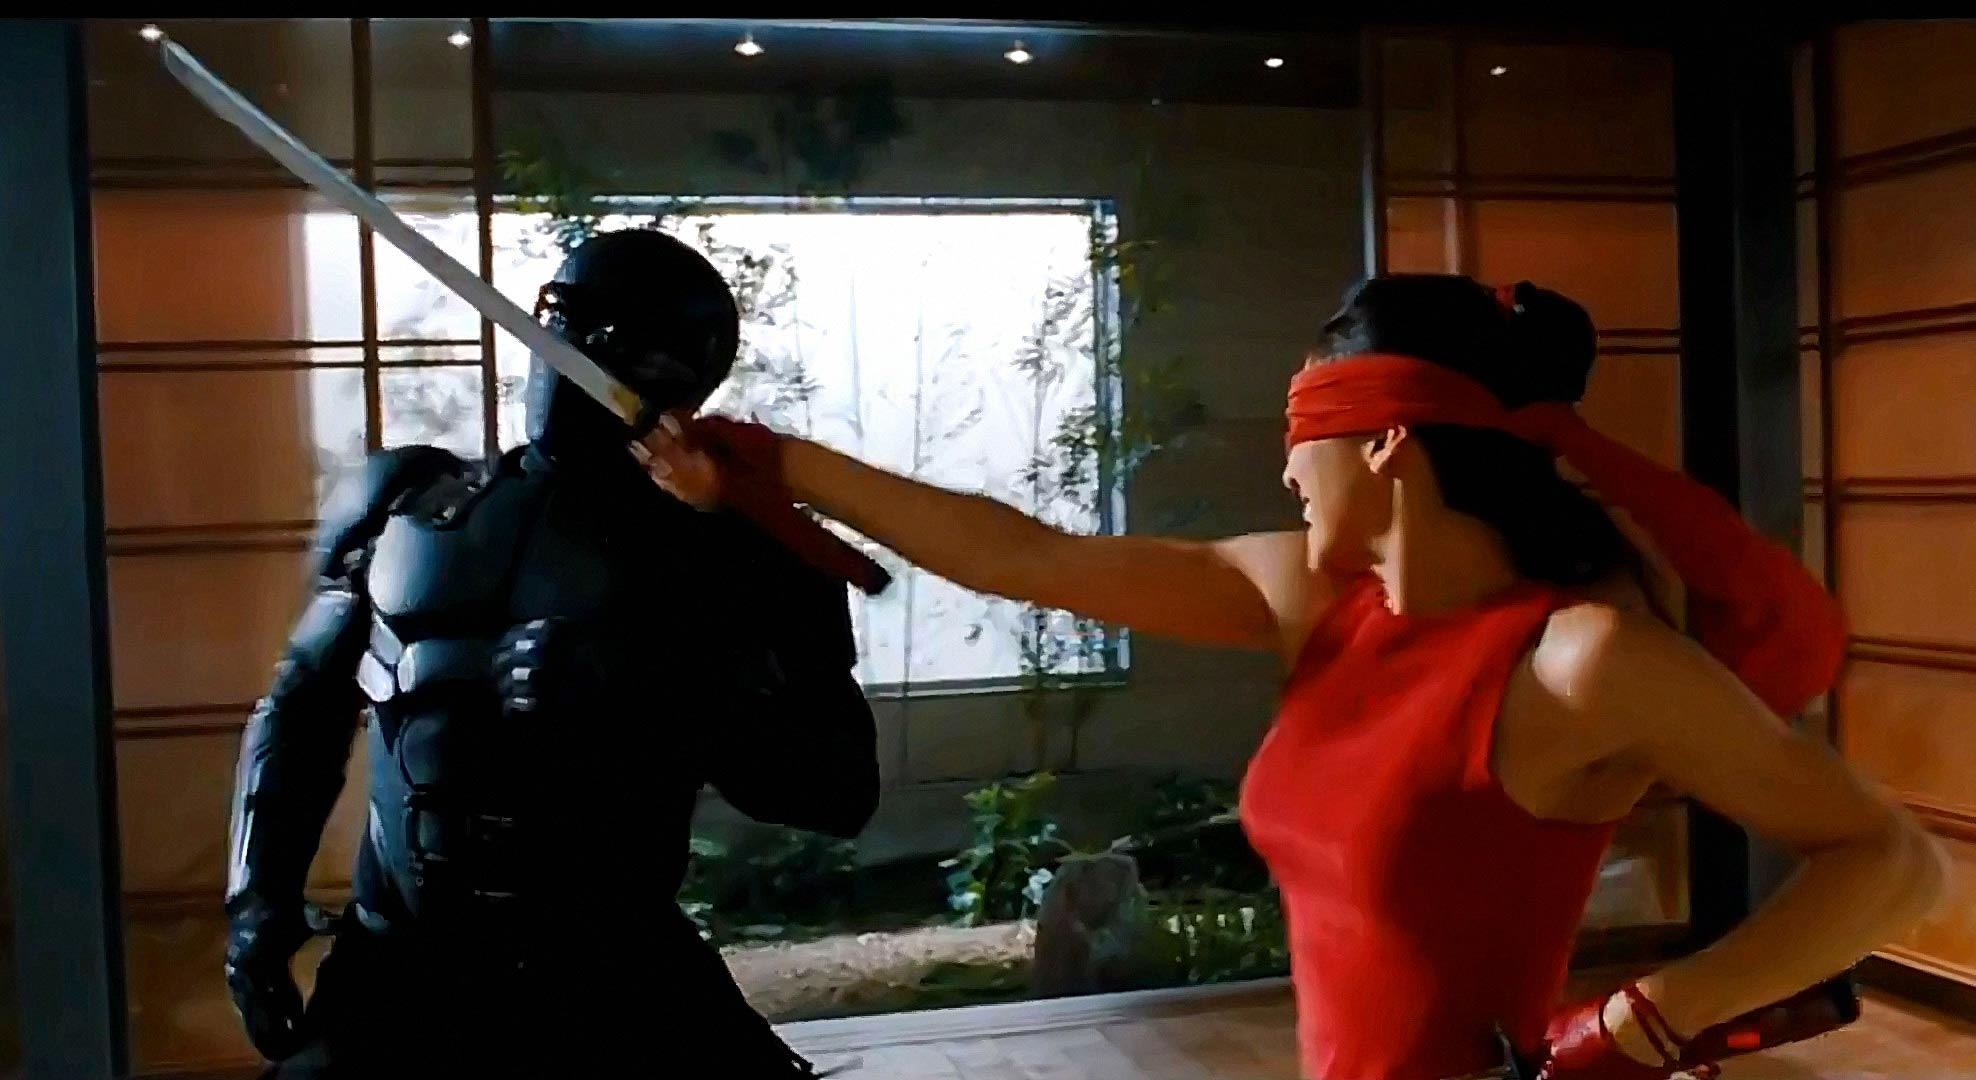 GI Joe Retaliation Babe Sword Fight